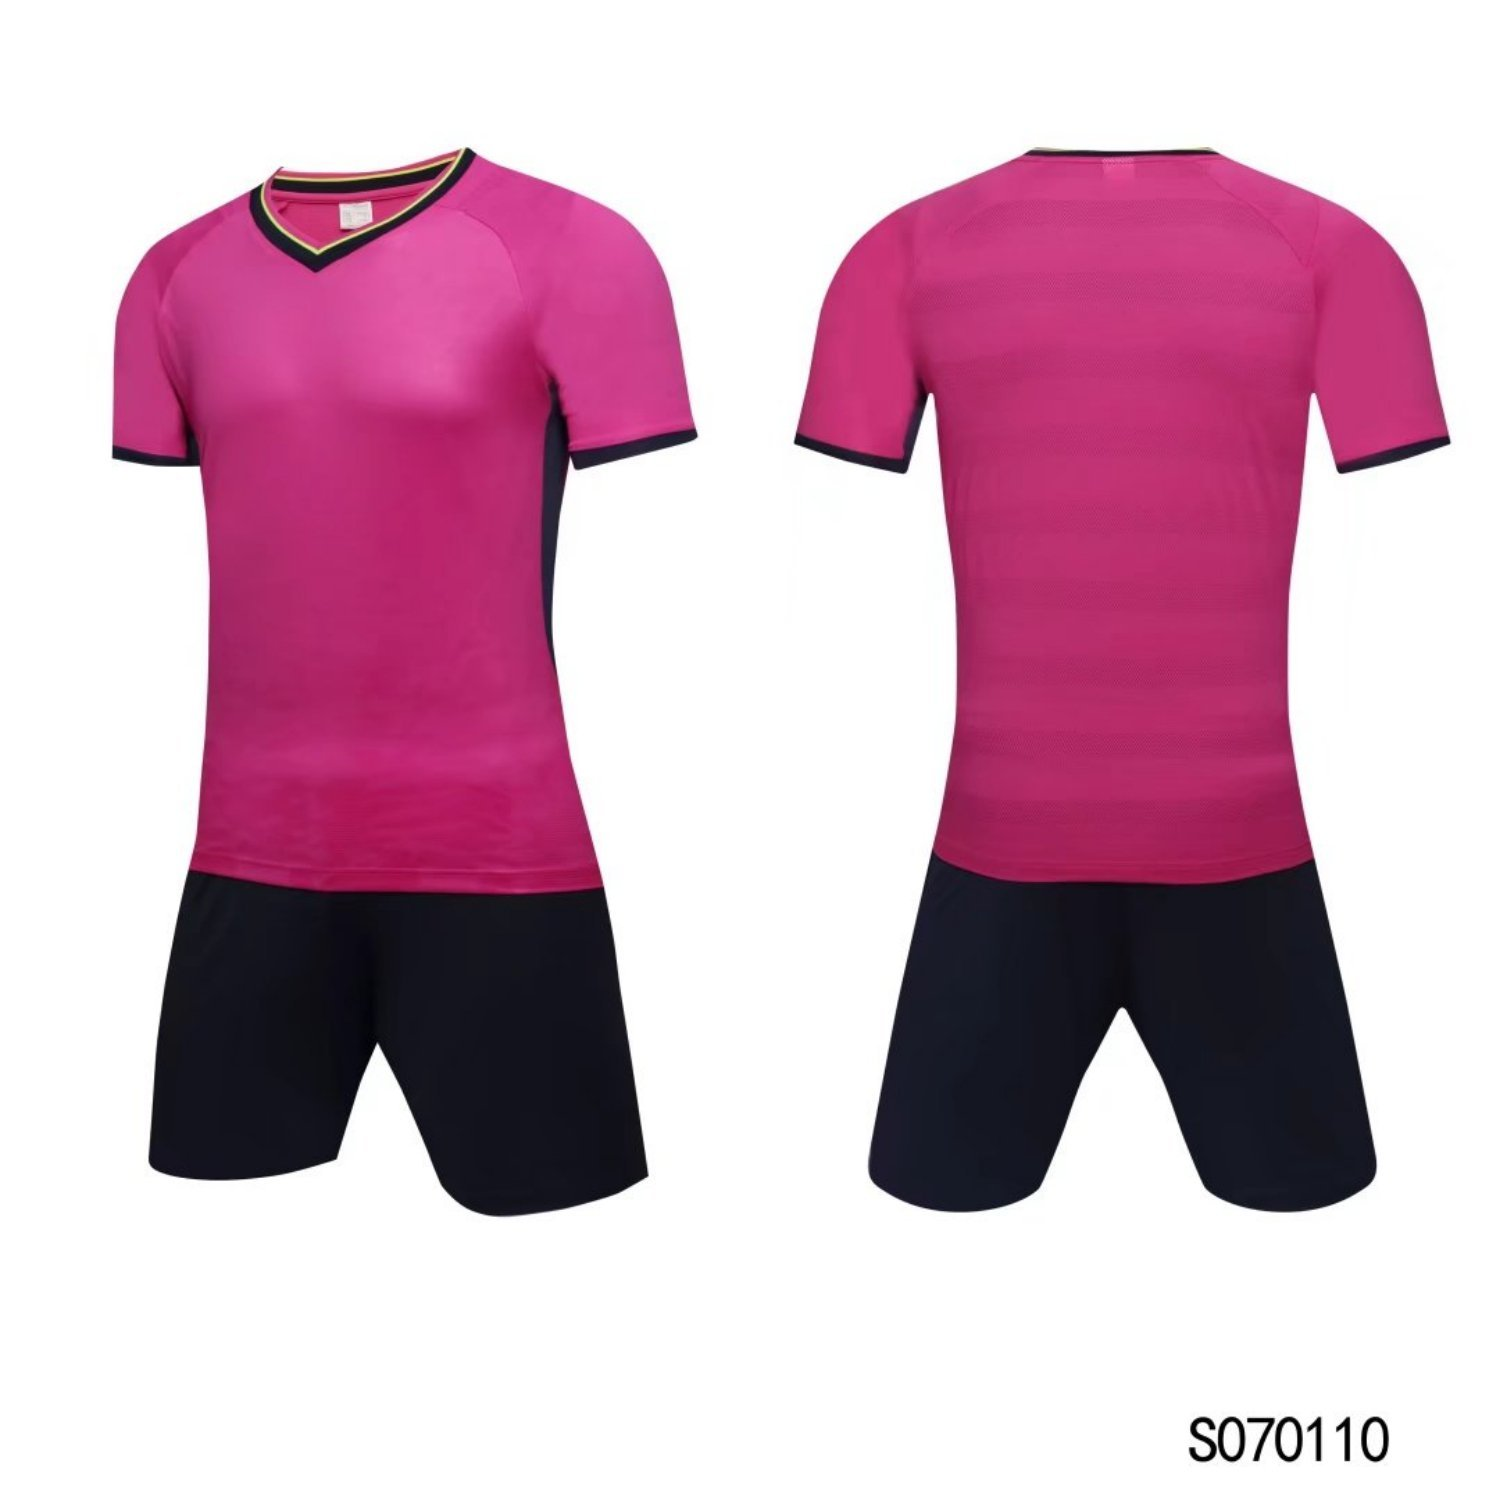 c0a91cd7201 Buy lusam feeling Sports Referee Jersey Suit Uniform Kit - Shirt + Shorts  for Football Soccer Rugby in Cheap Price on m.alibaba.com